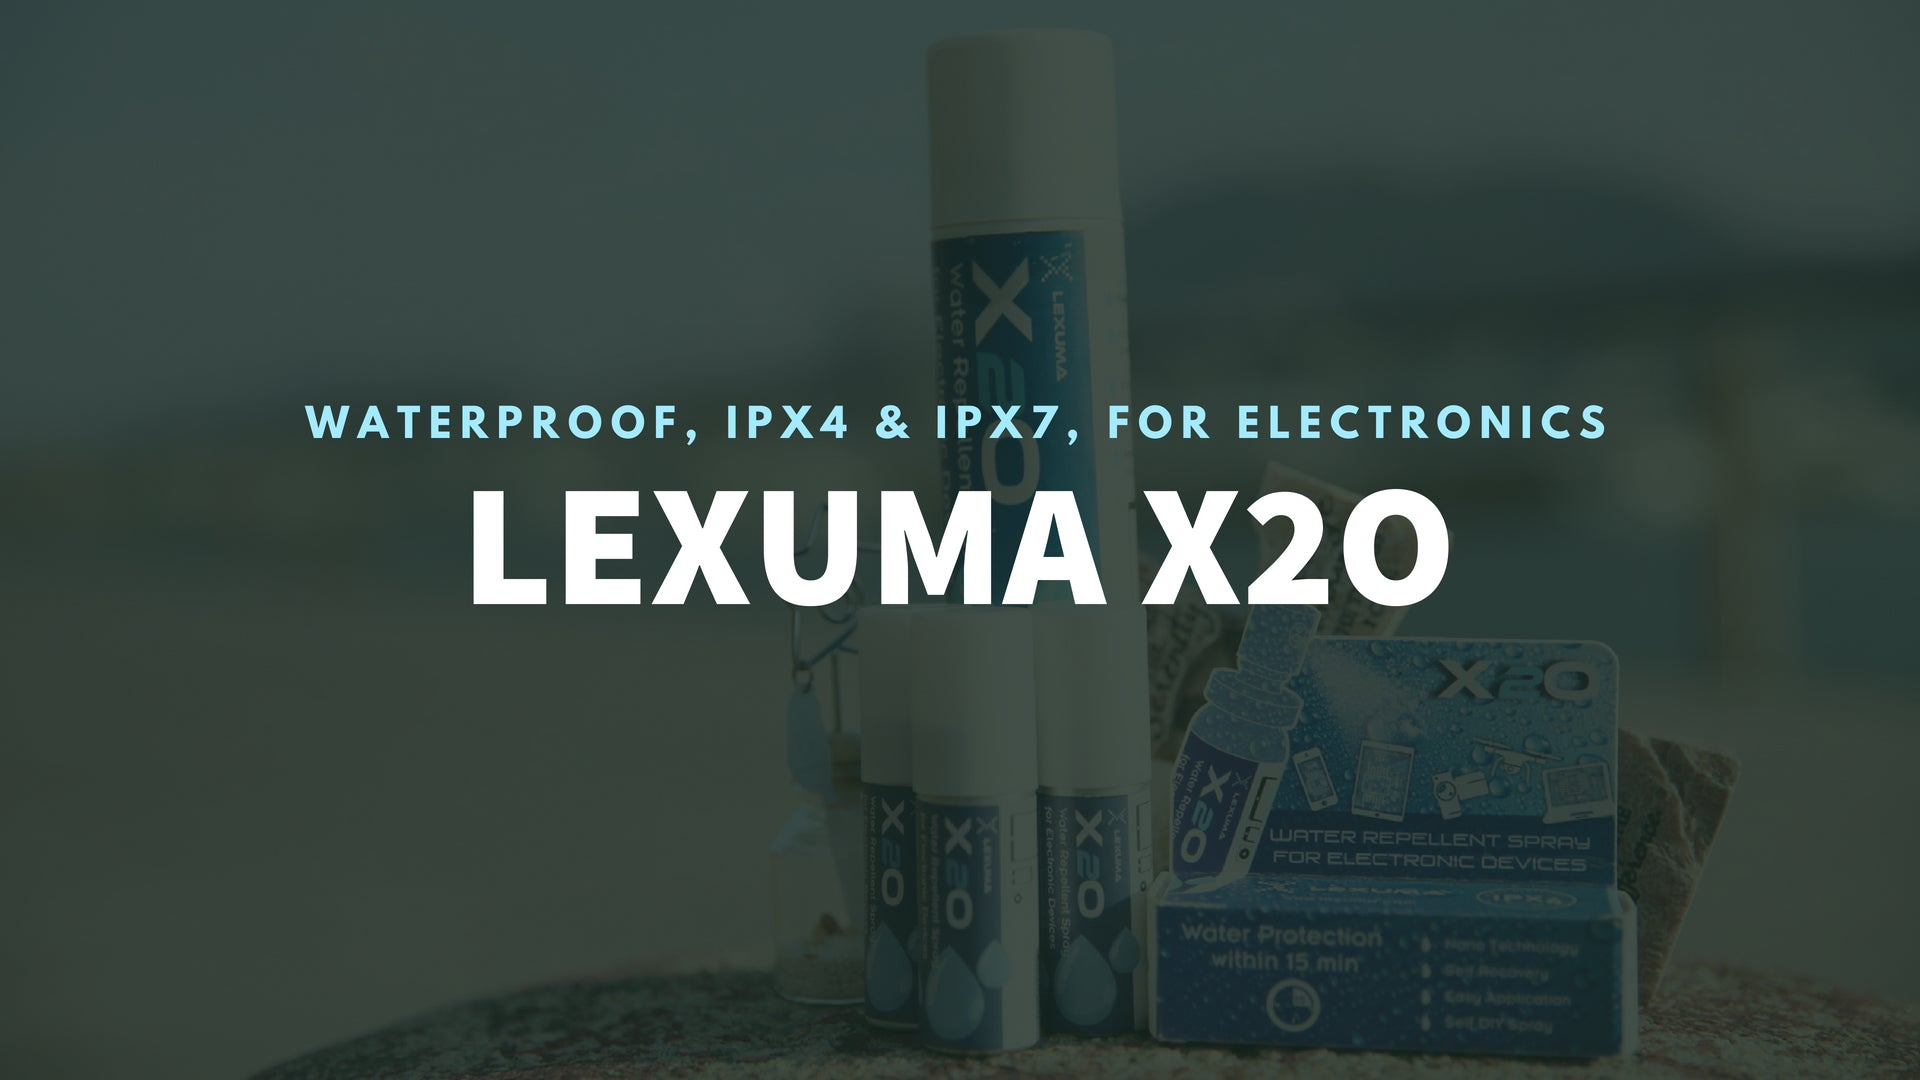 Lexuma X2O (100ml) Water Repellent Spray with IPX4 and IPX7 water protection conformal protective coating electronics pcb waterproofing circuit board sealer gel conformal clear coat for electronics moisture proof pcb waterproof nano spray for electronics devices mobile phone epoxy conformal coating sealant spray moisture proof Machinery Protection Water resistant banner - iMartCity